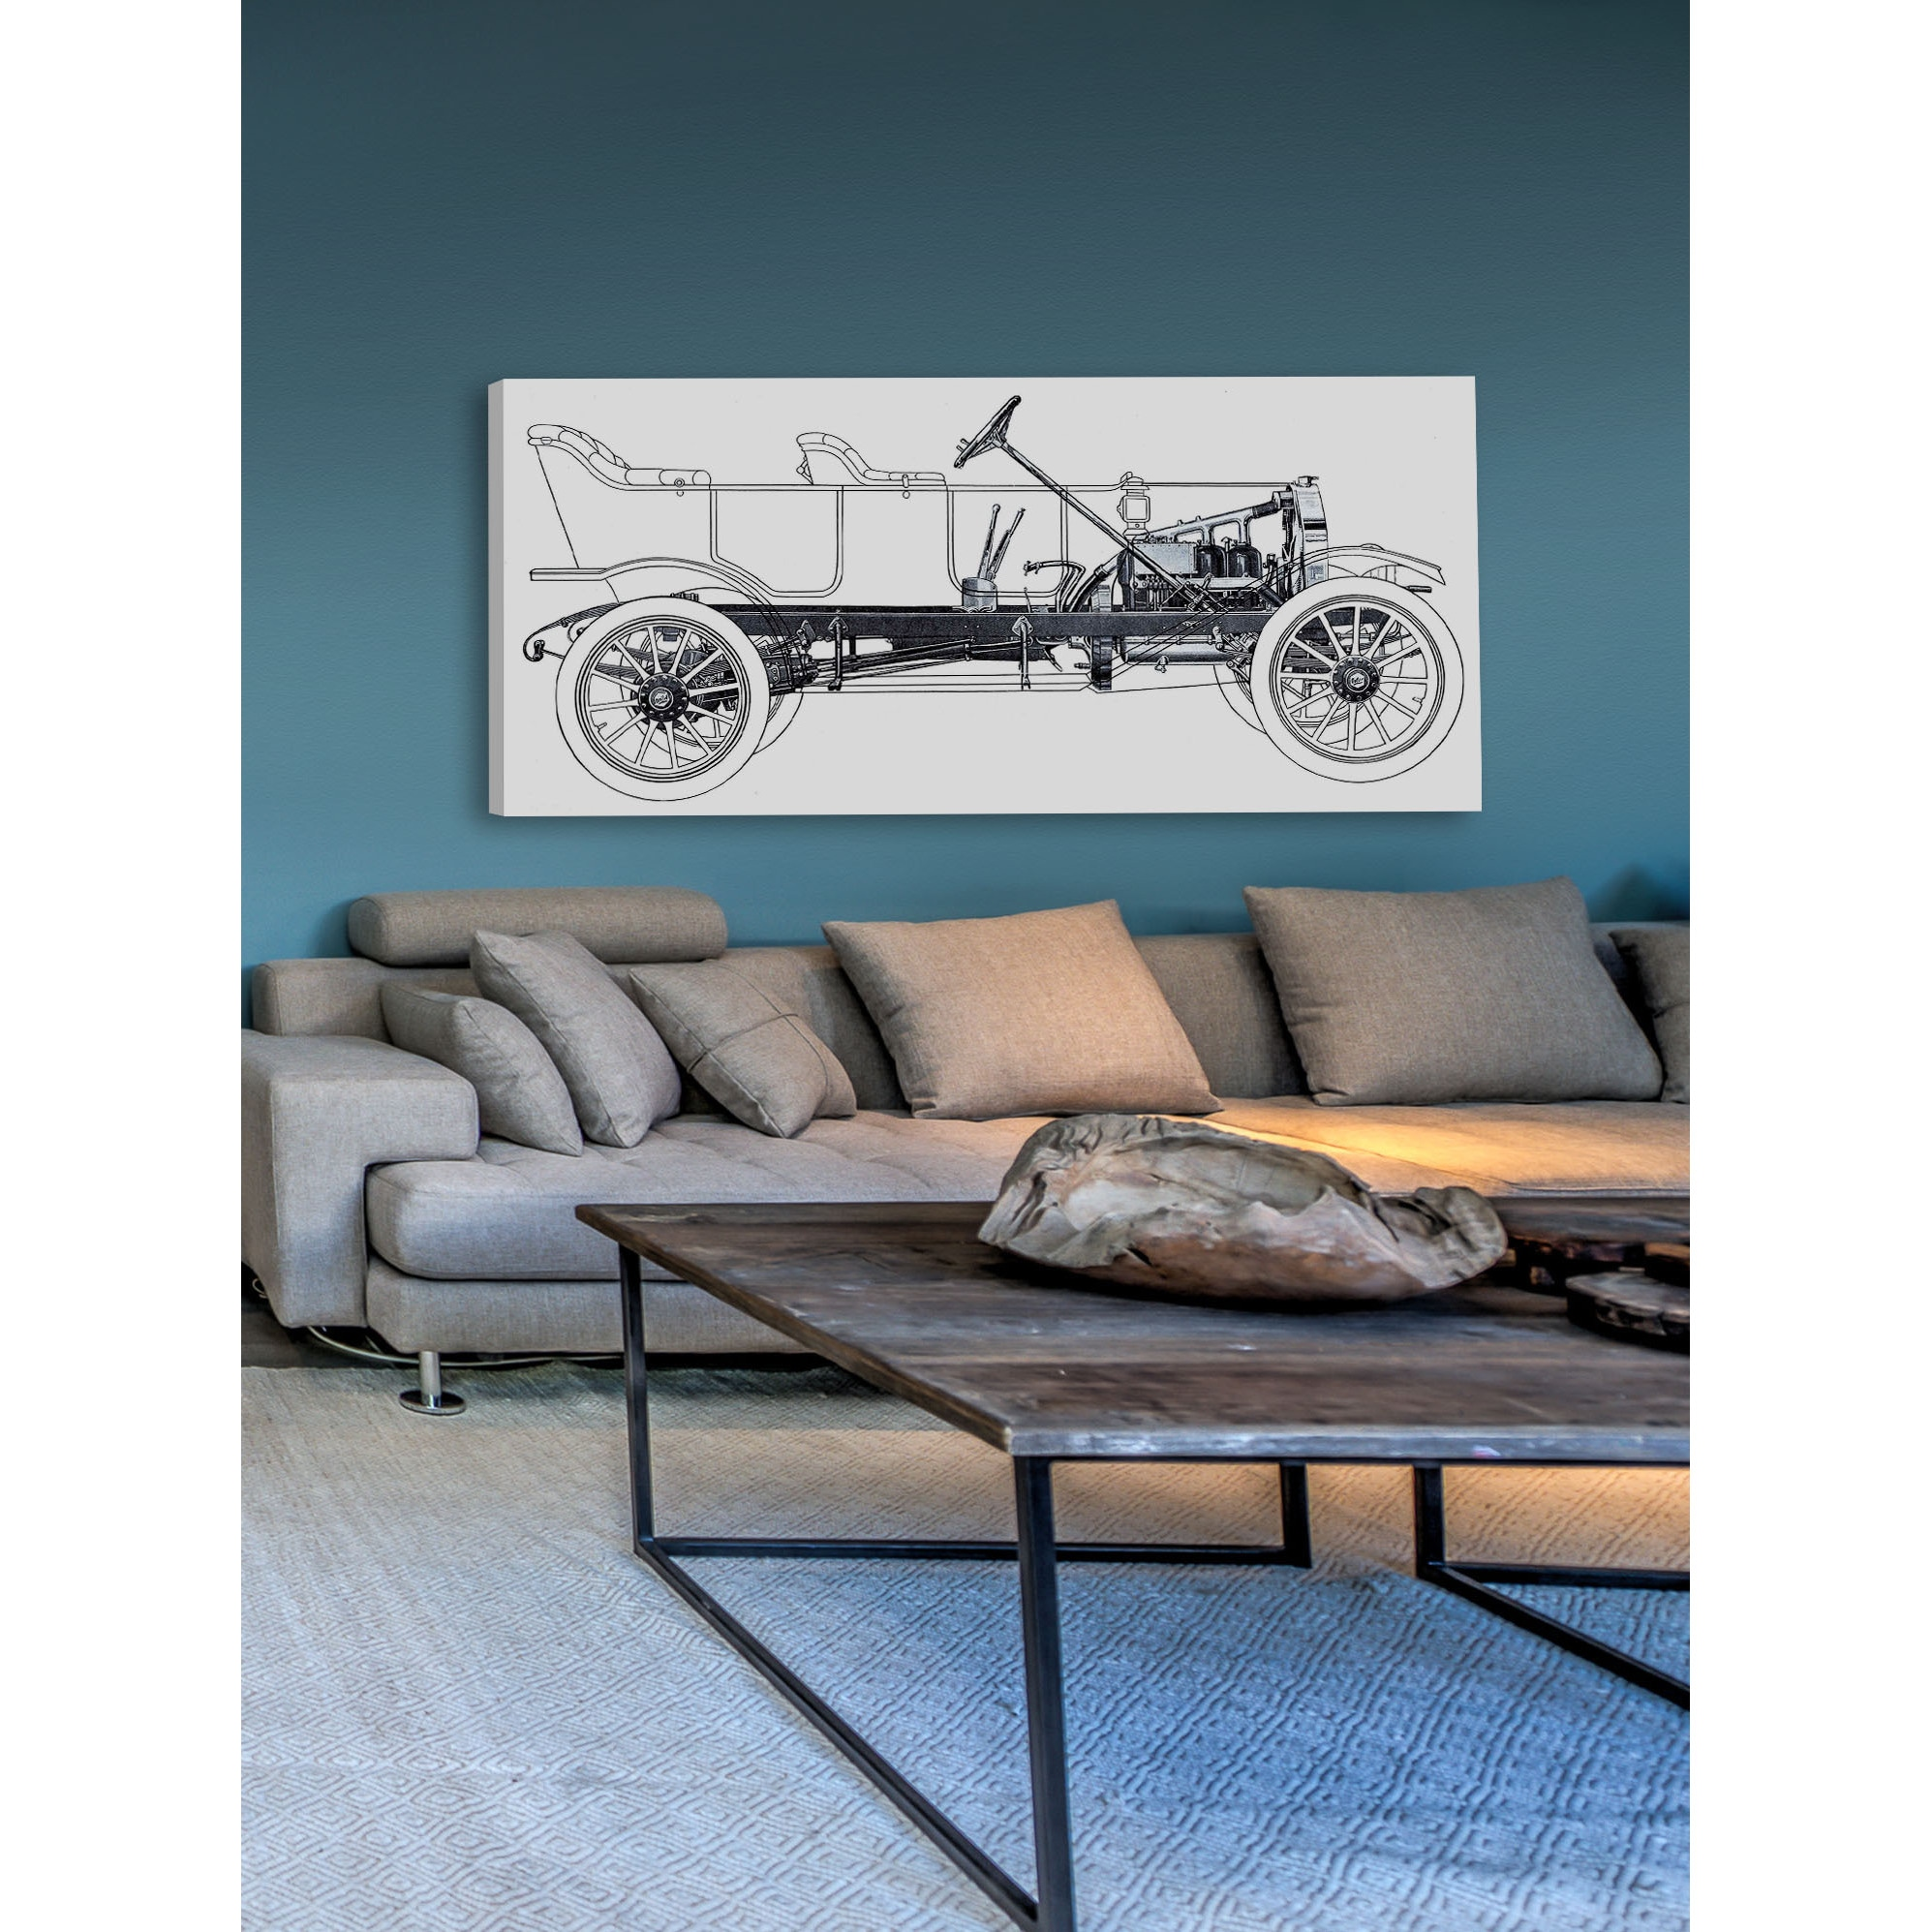 Marmont hill vintage race car blueprint 1 painting print on canvas marmont hill vintage race car blueprint 1 painting print on canvas multi color free shipping today overstock 18089408 malvernweather Gallery